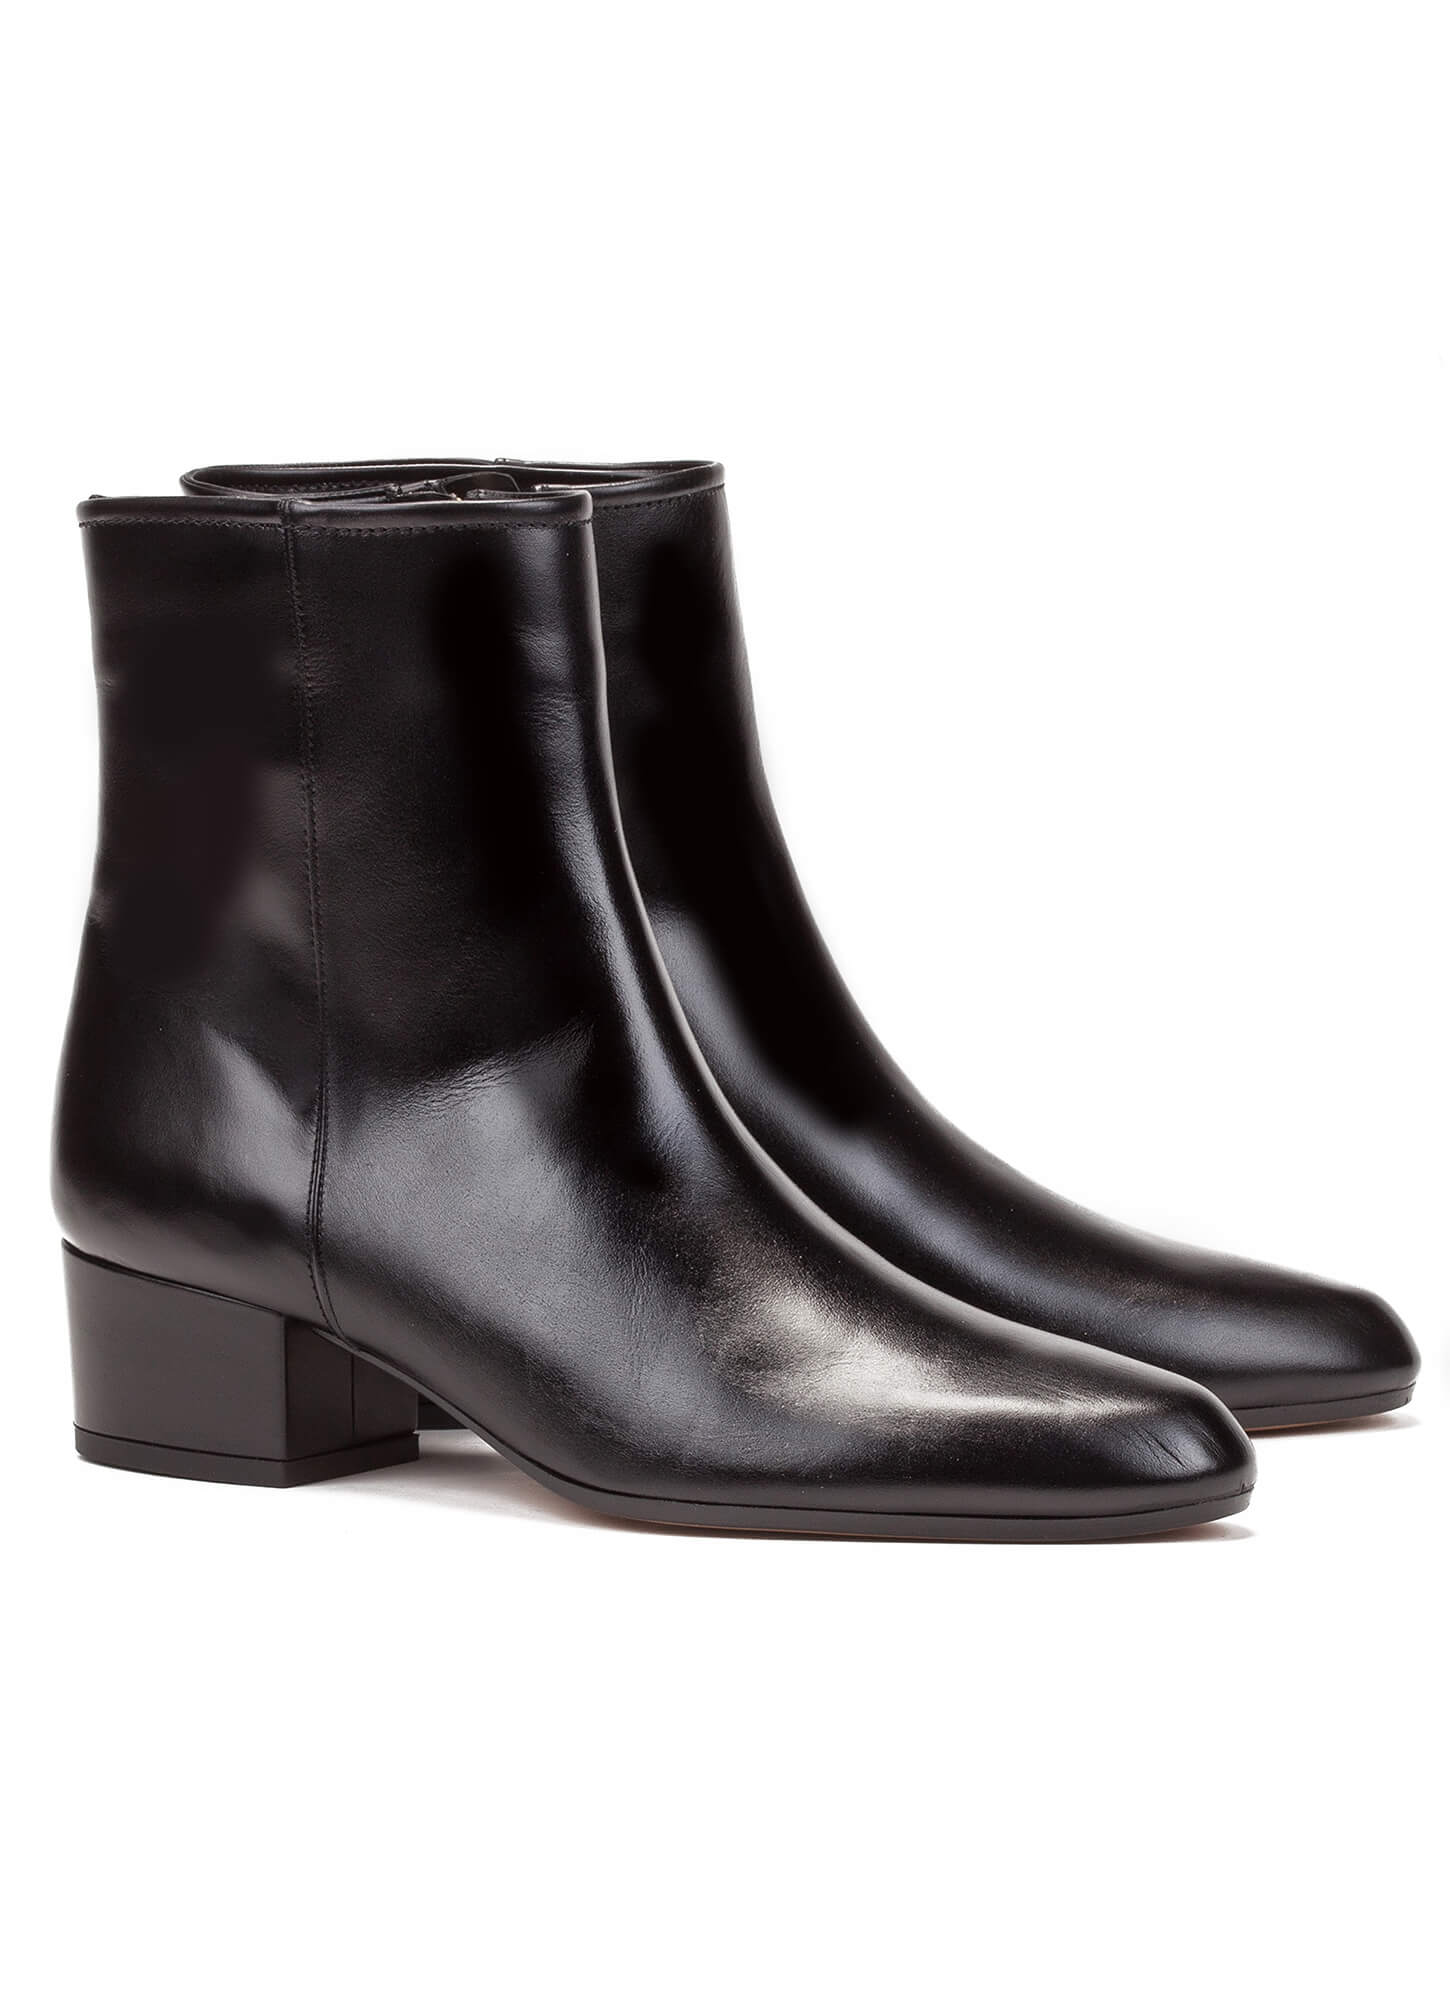 24ca92acb03 Low heel ankle boot in black leather - online shoe store Pura Lopez ...